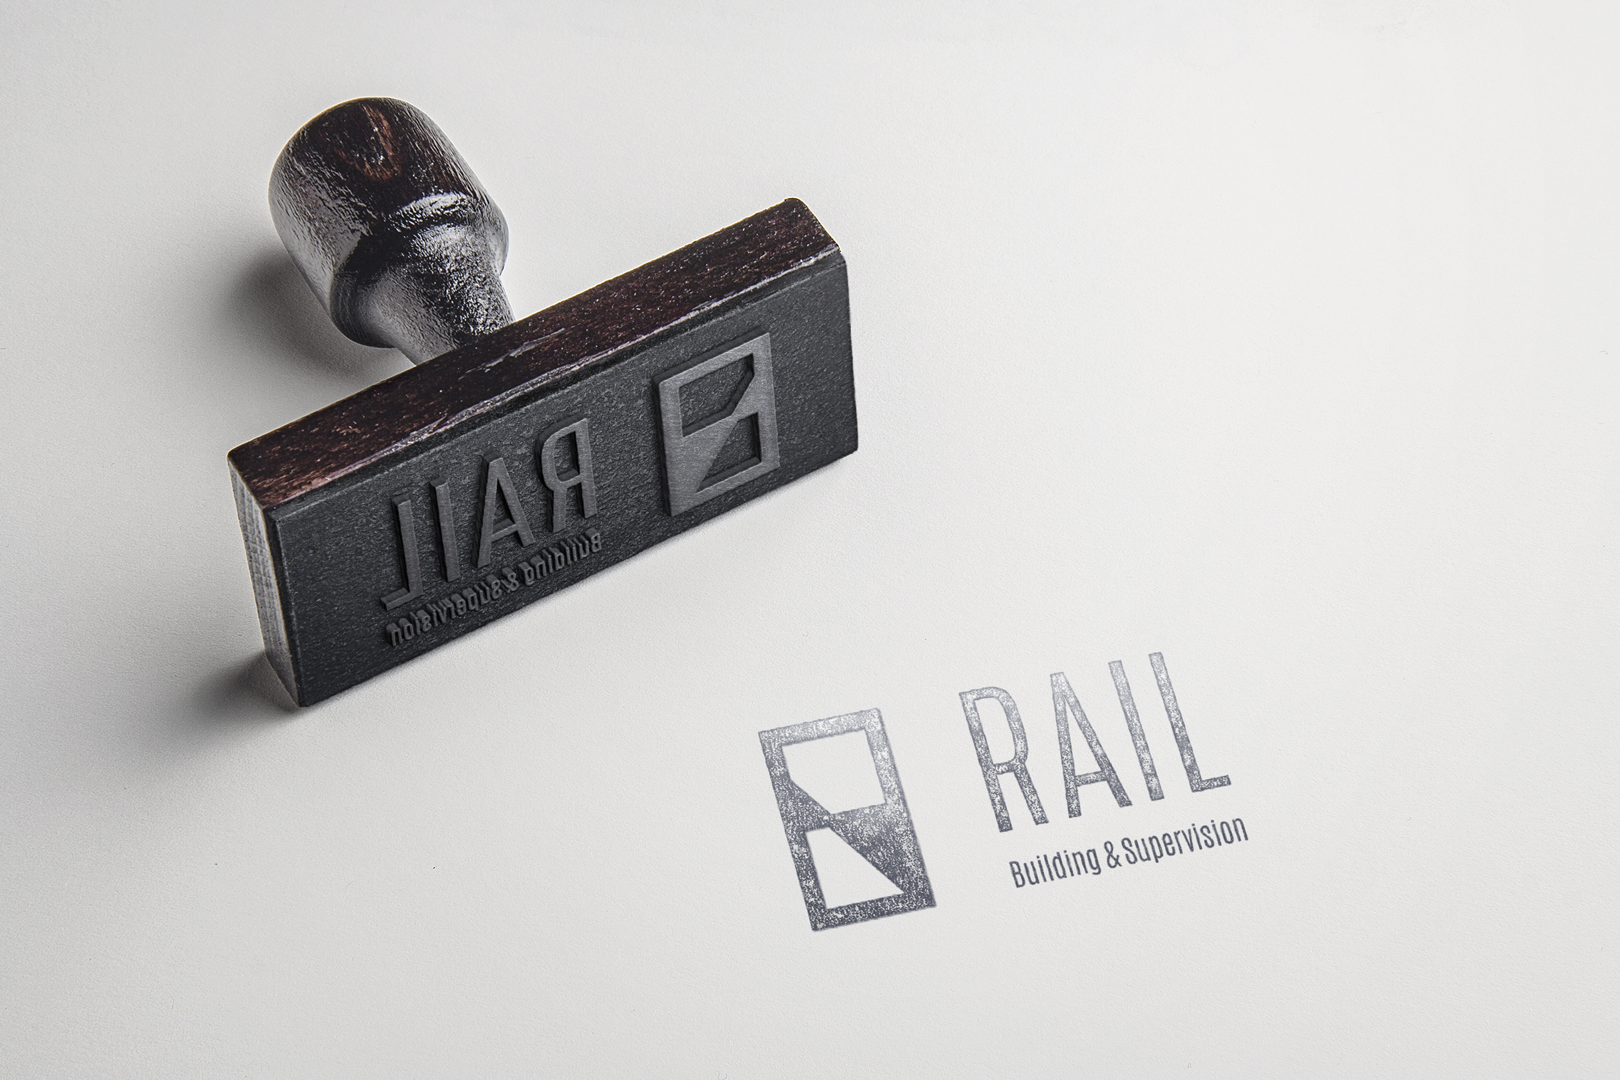 rail-rubber-stamp-mockup